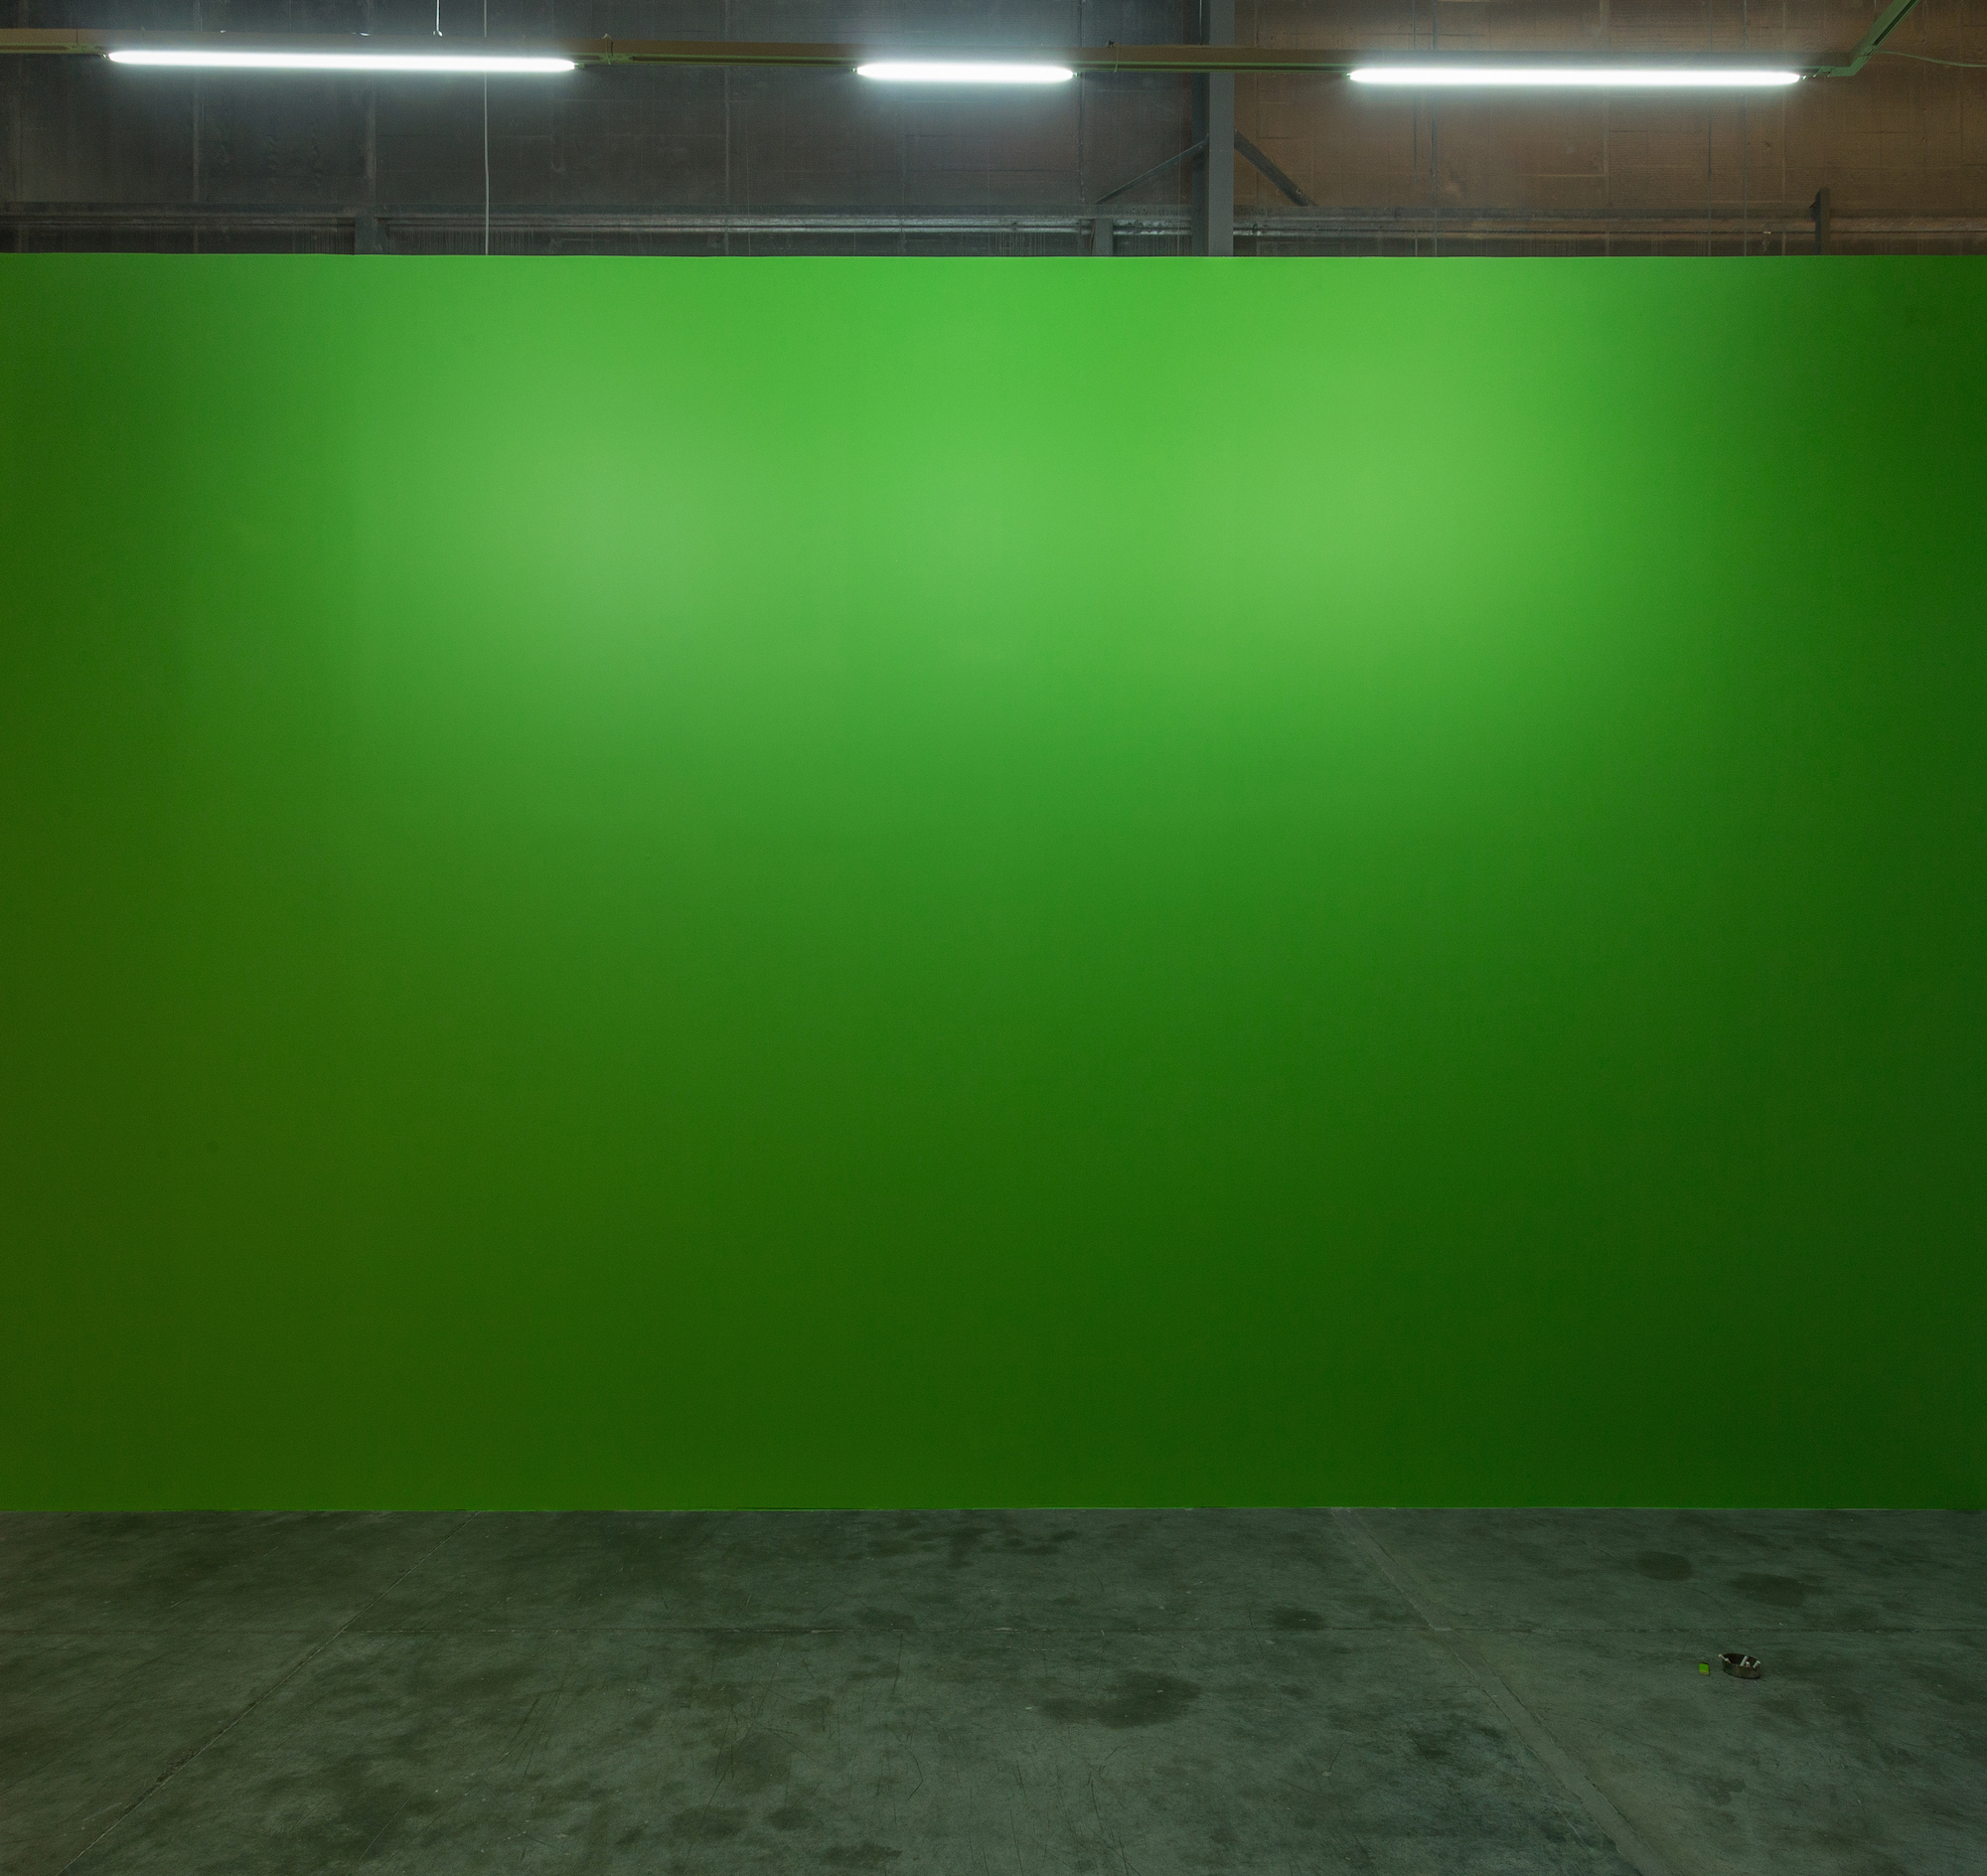 Green wall Fluorescent light, Hassan's ashtray 2014 Variable dimensions